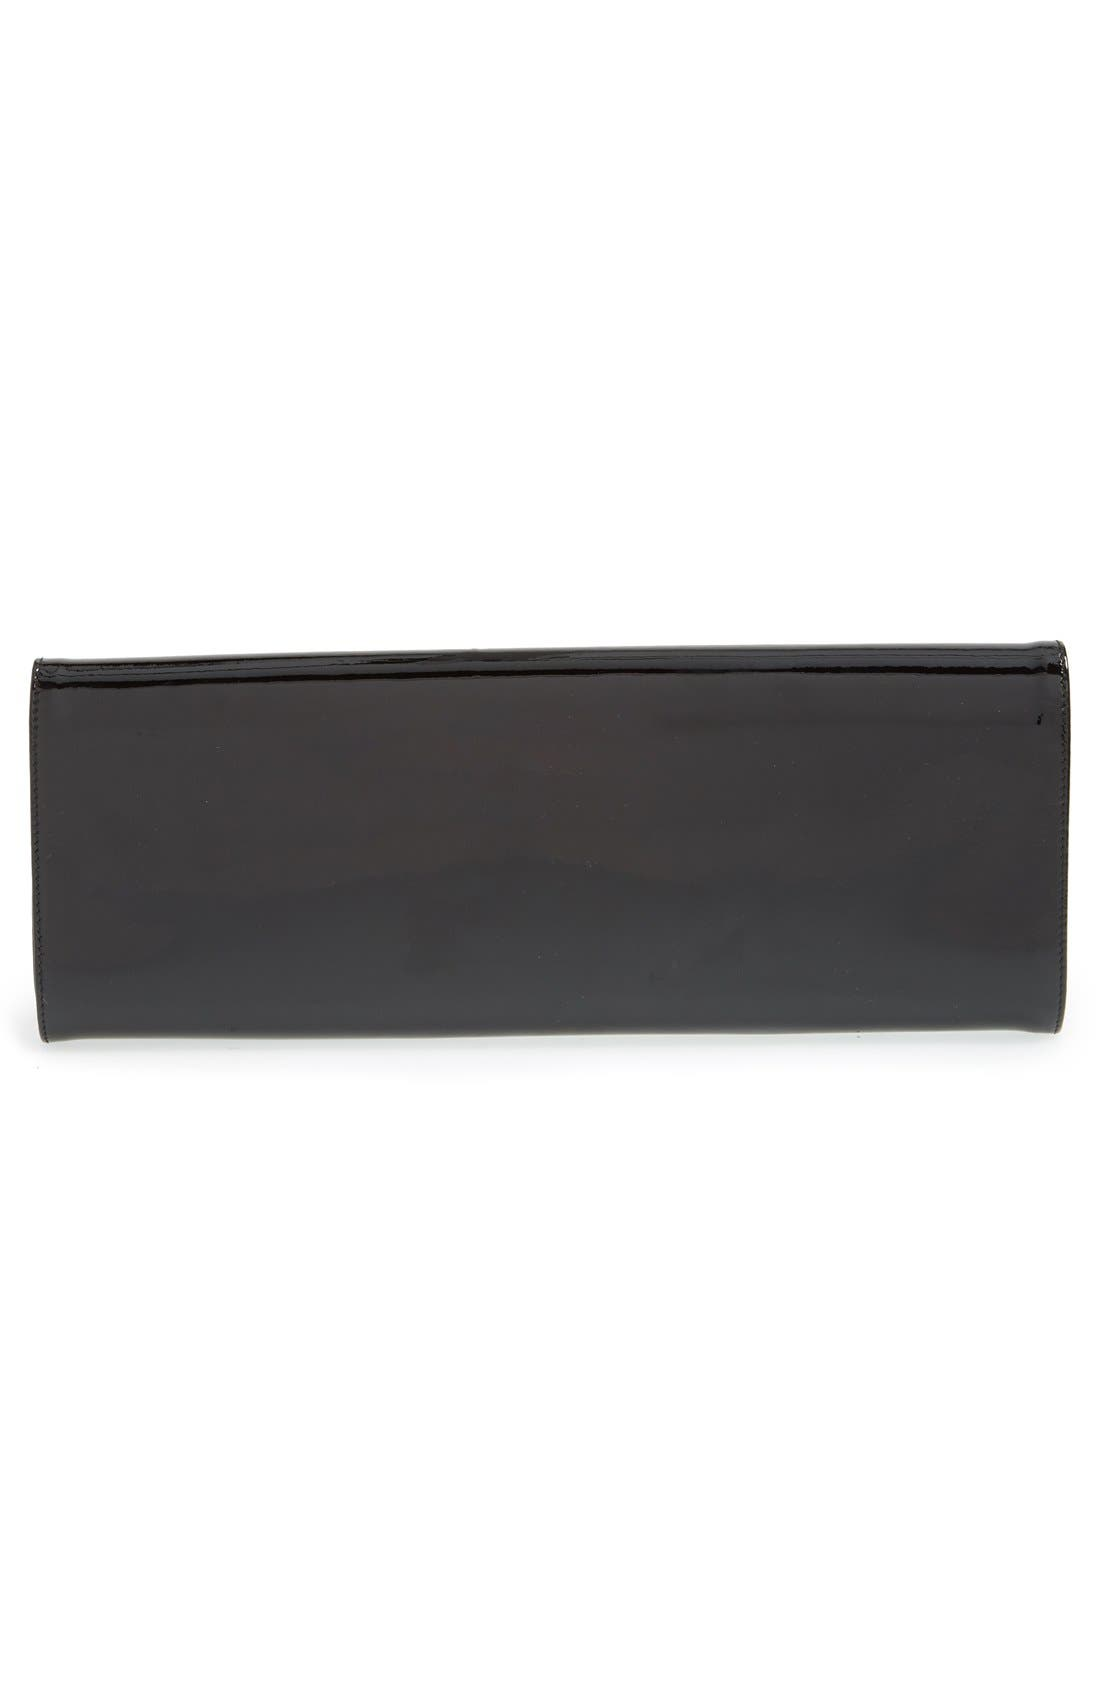 Alternate Image 3  - Christian Louboutin 'Pigalle' Patent Leather Clutch